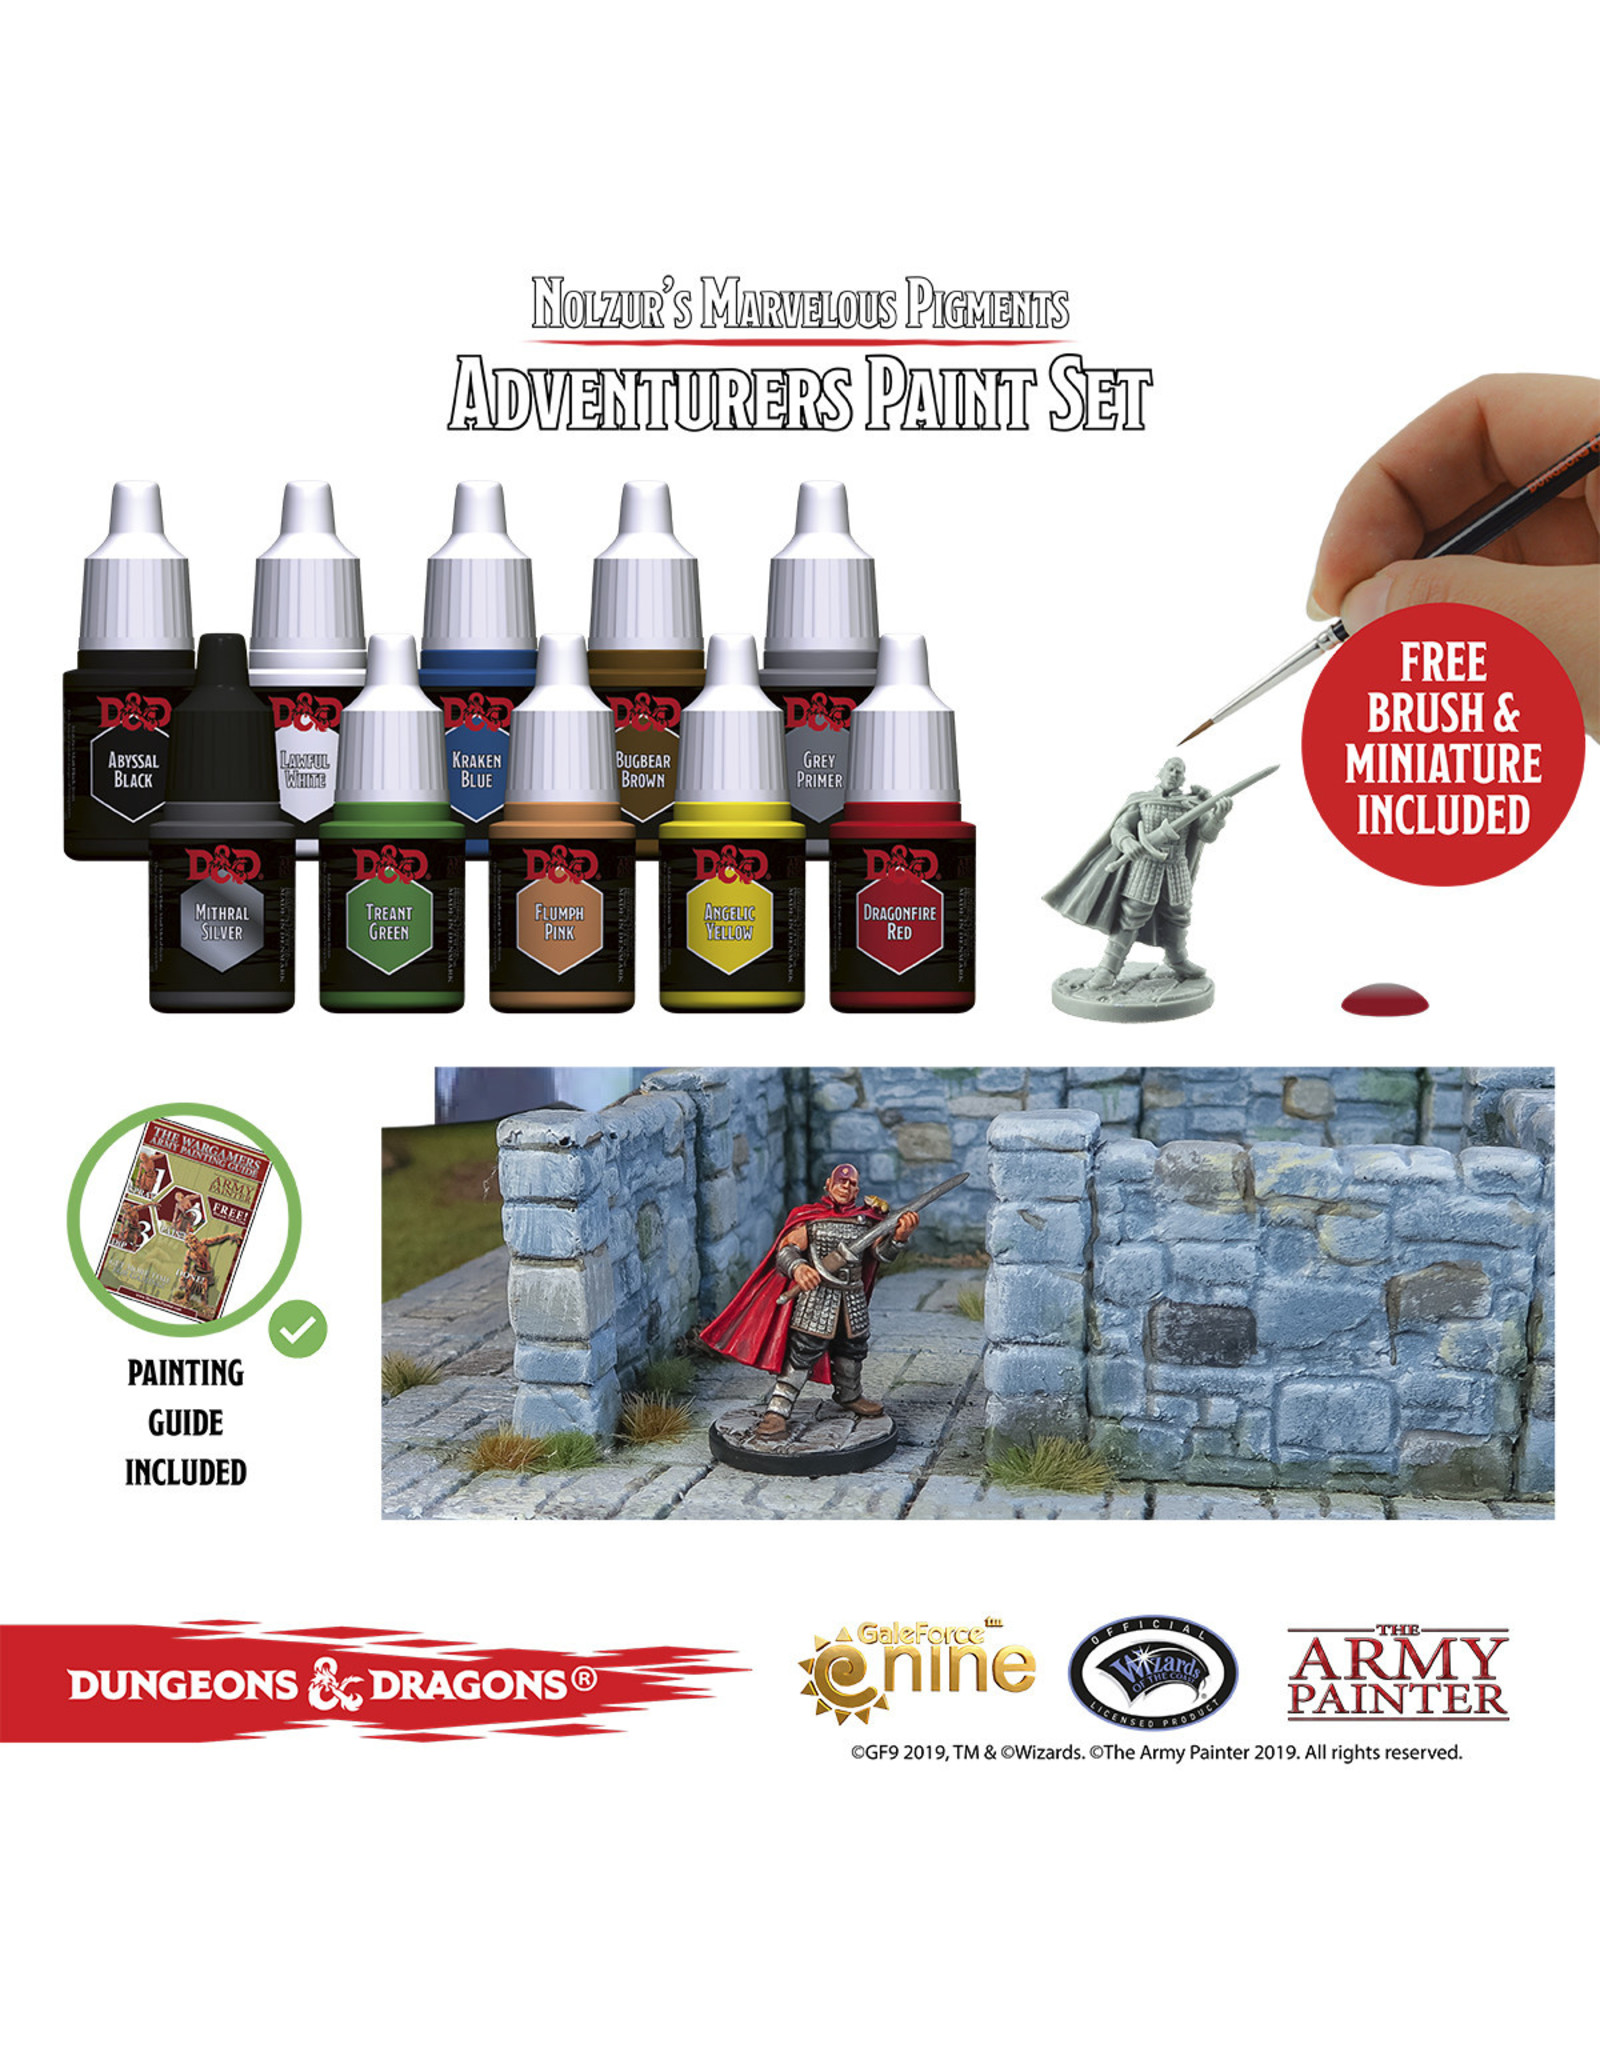 The Army Painter D&D Nolzur's Marvelous Pigments Adventurers Paint Set